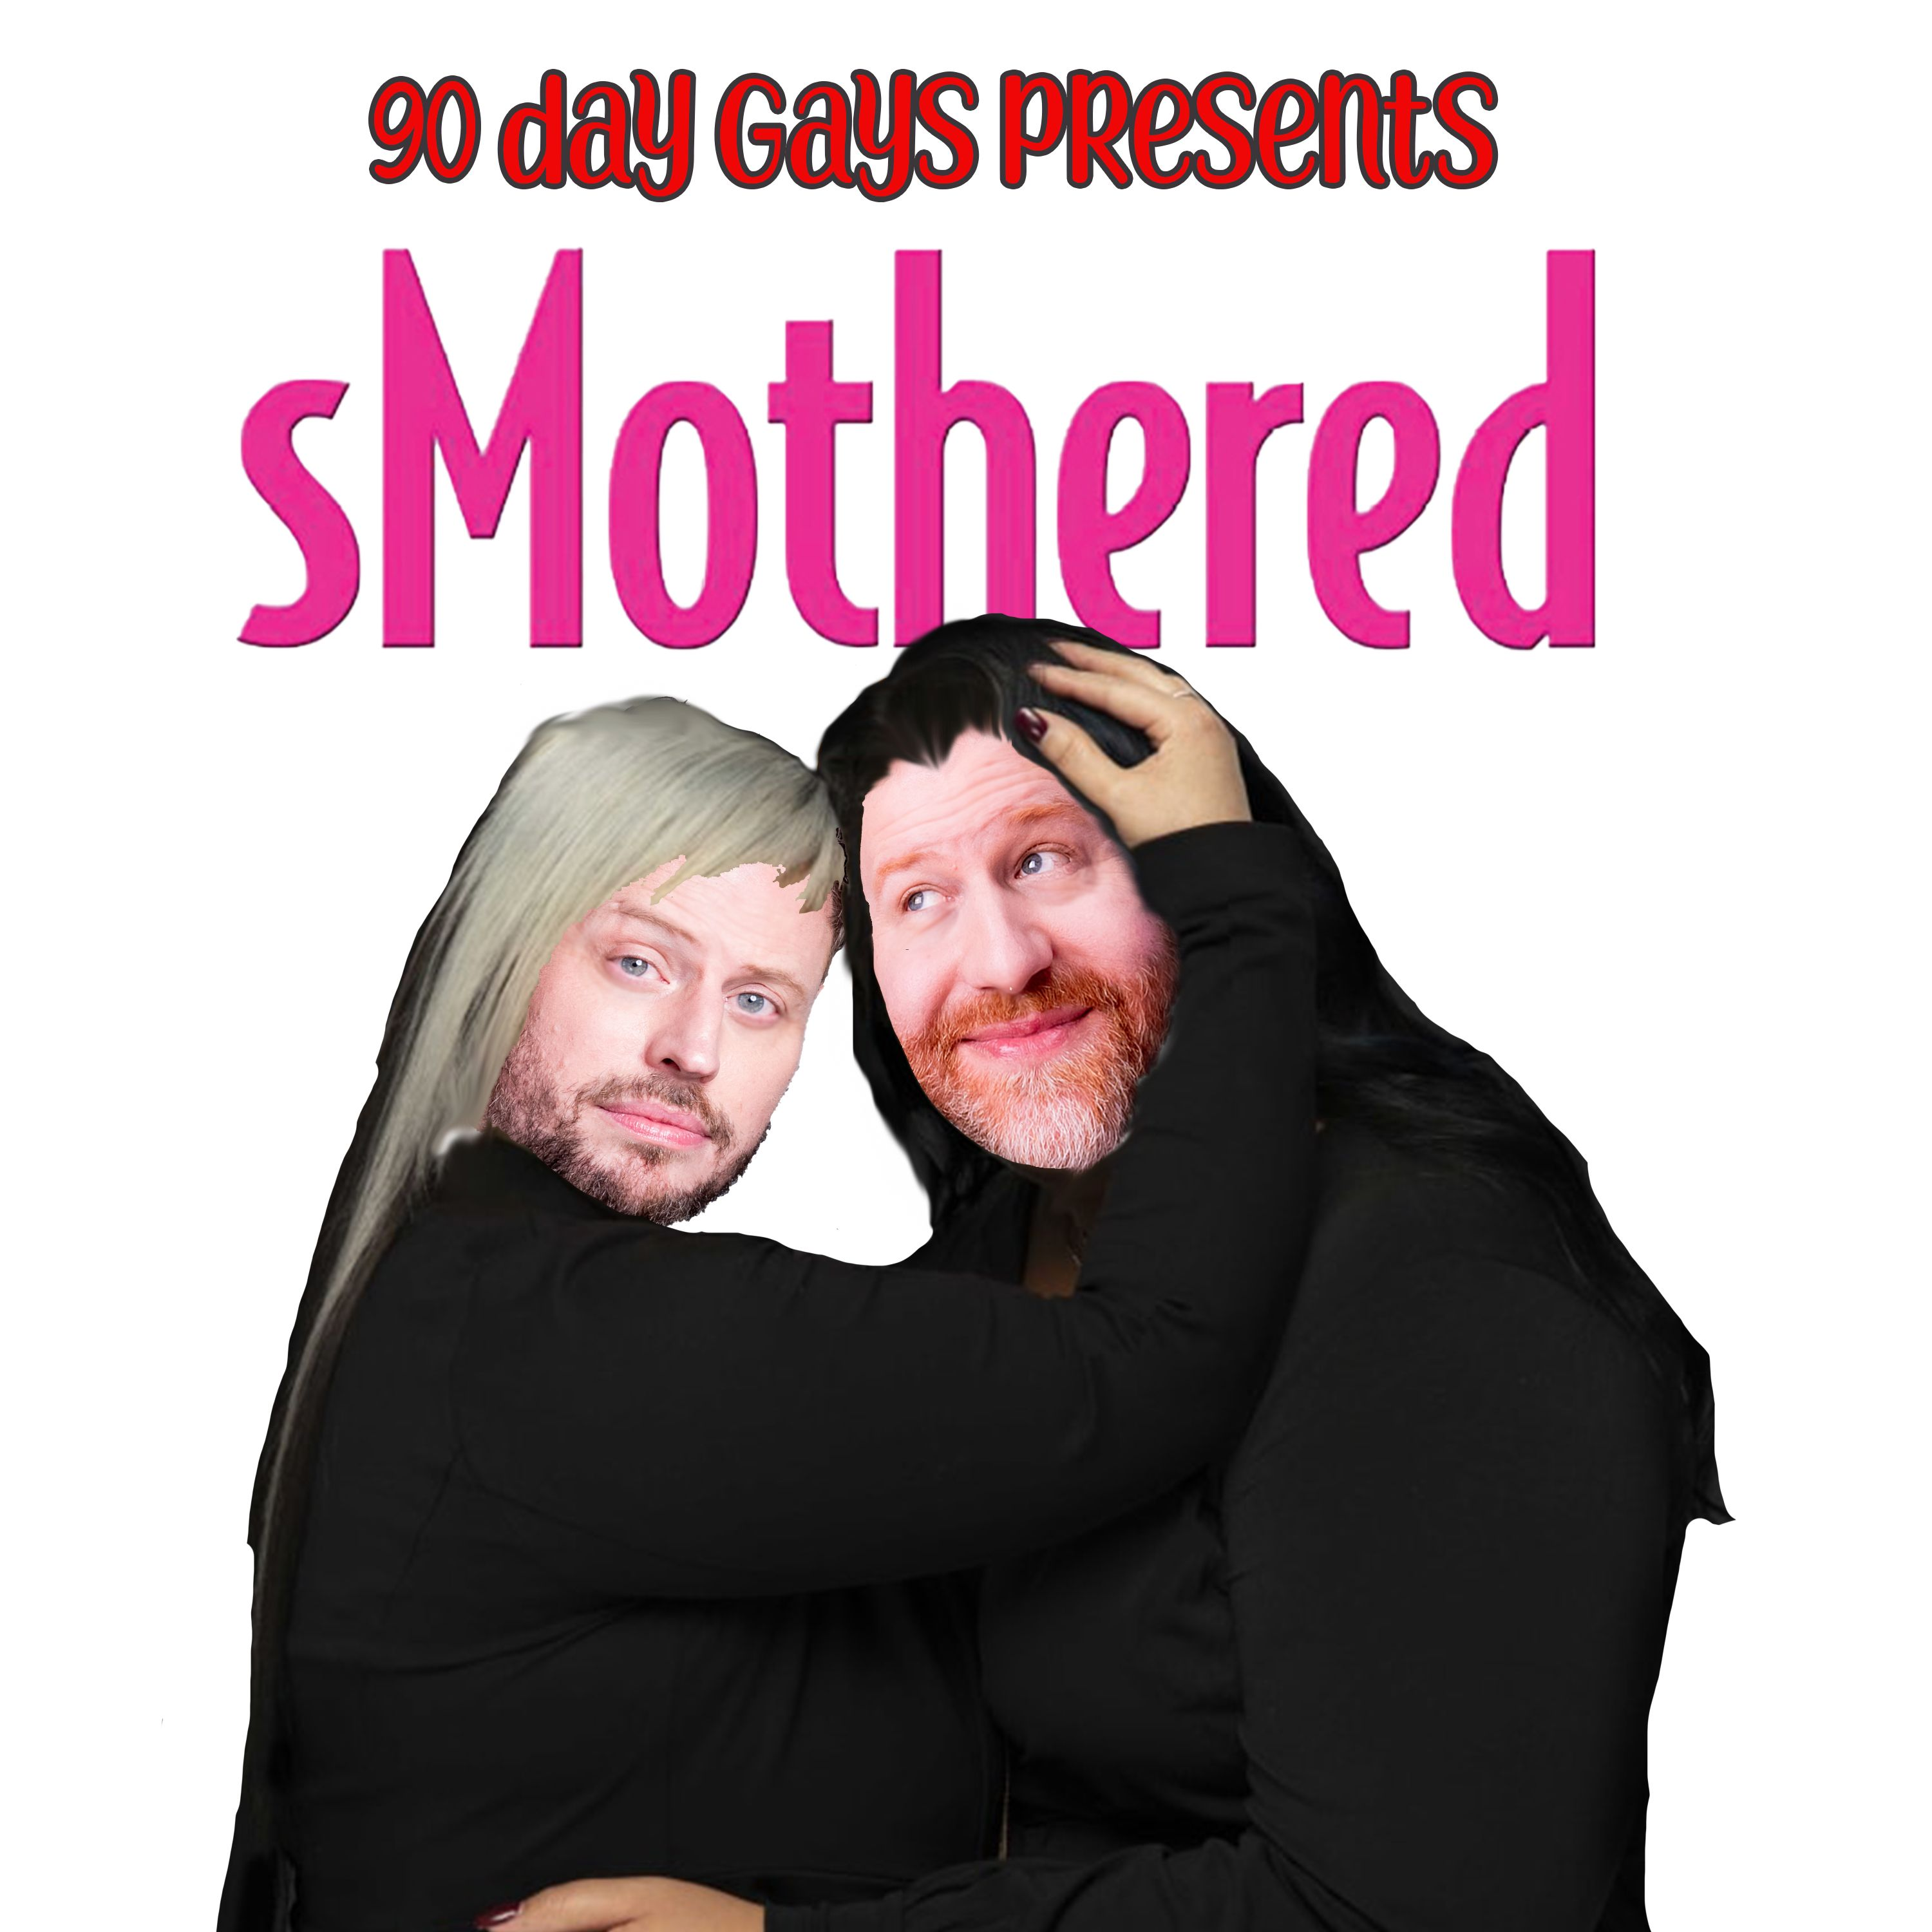 """90DG Presents sMothered: 0201 """"What Mom Wants, Mom Gets"""""""